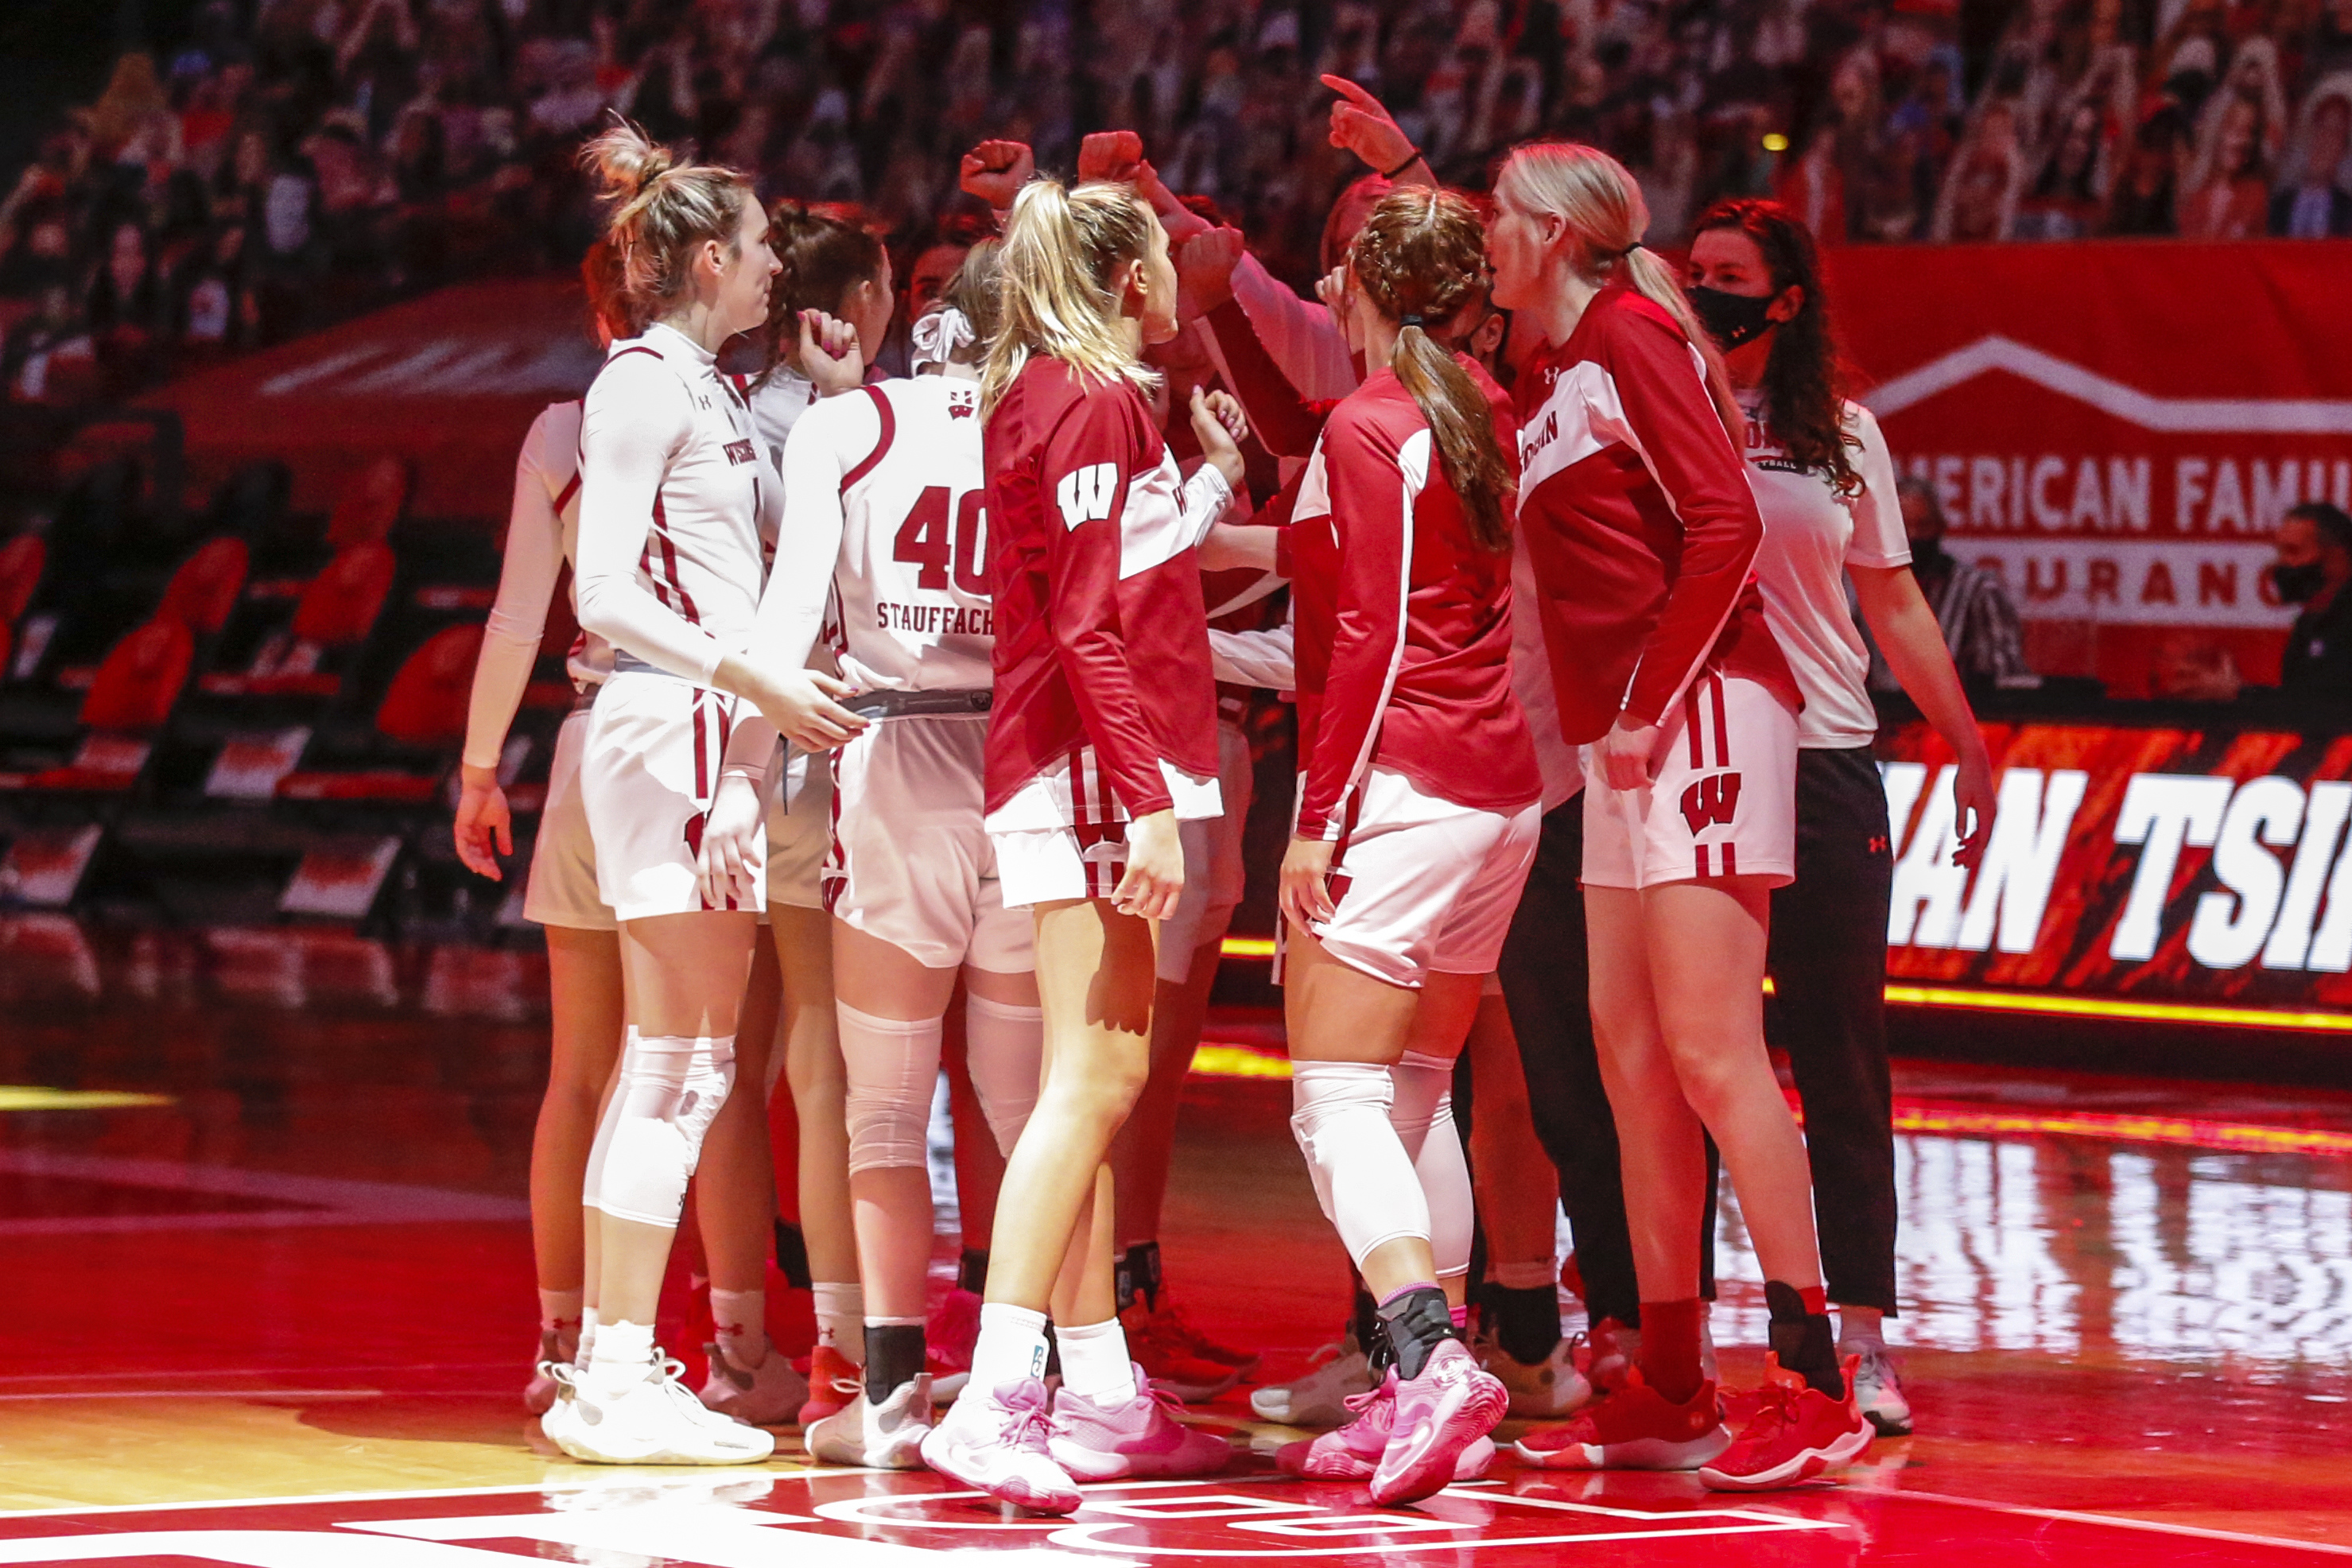 COLLEGE BASKETBALL: FEB 24 Women's Indiana at Wisconsin